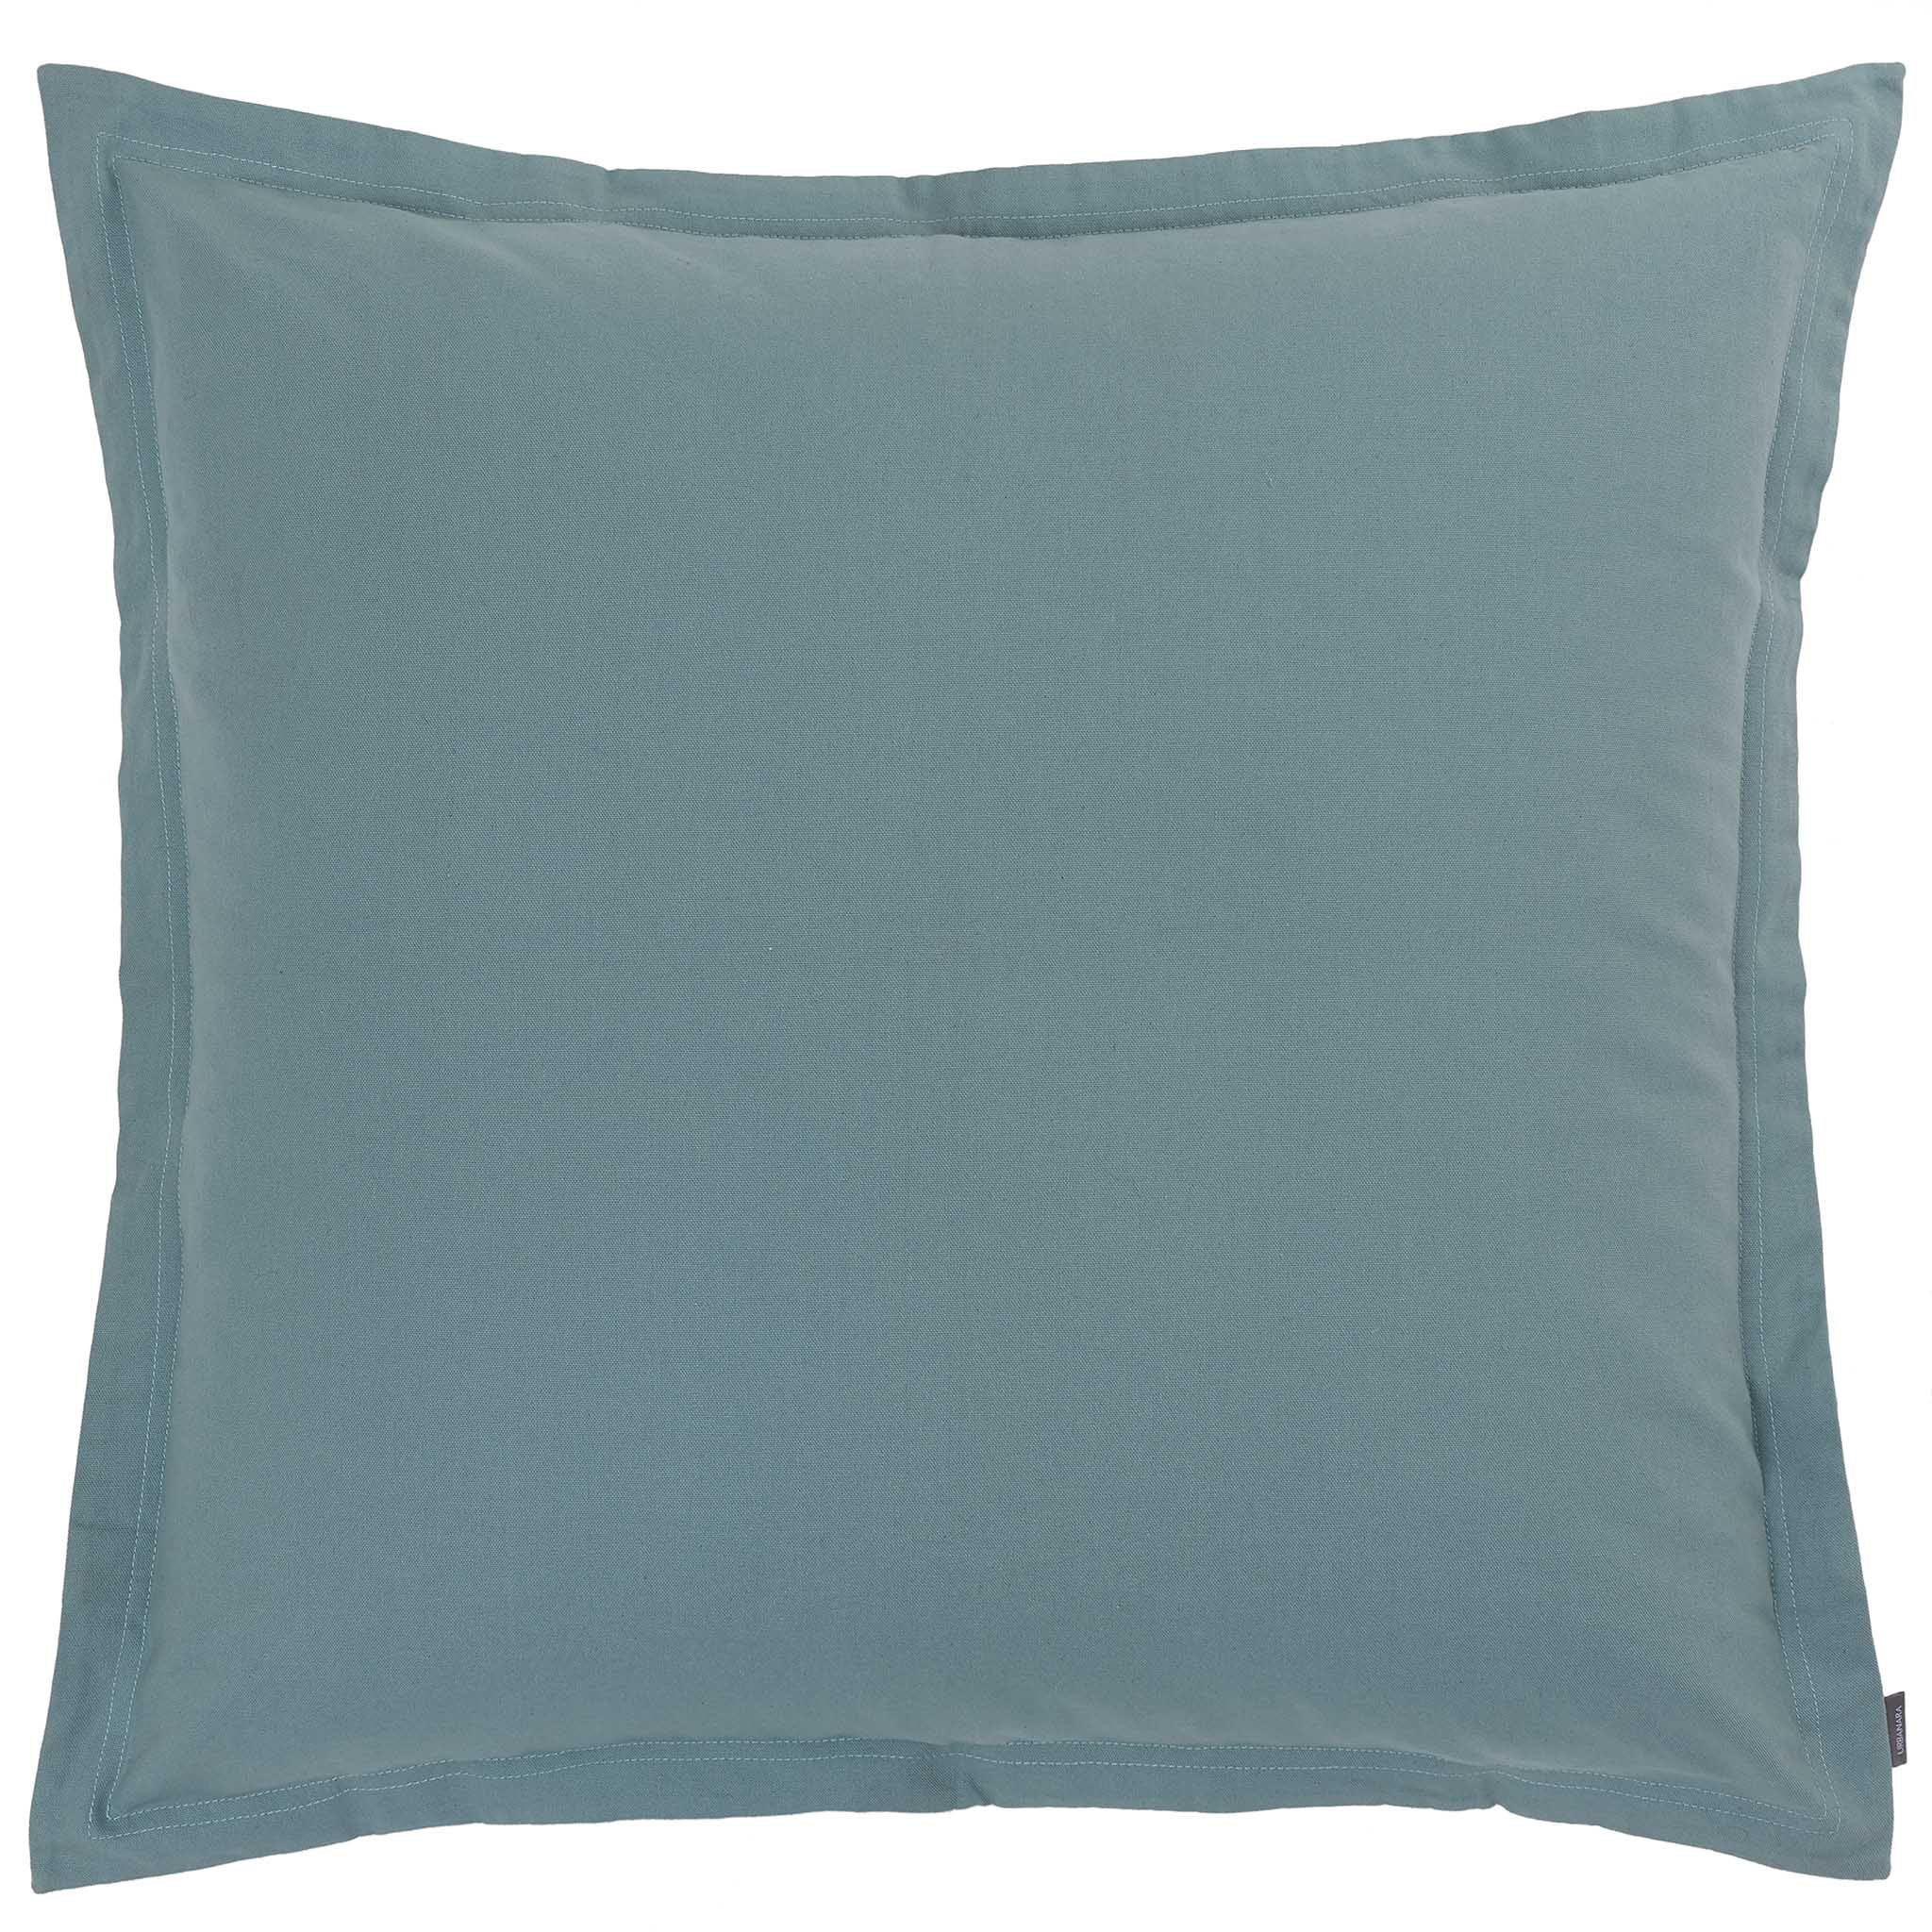 Komana Floor Cushion [Green Grey]